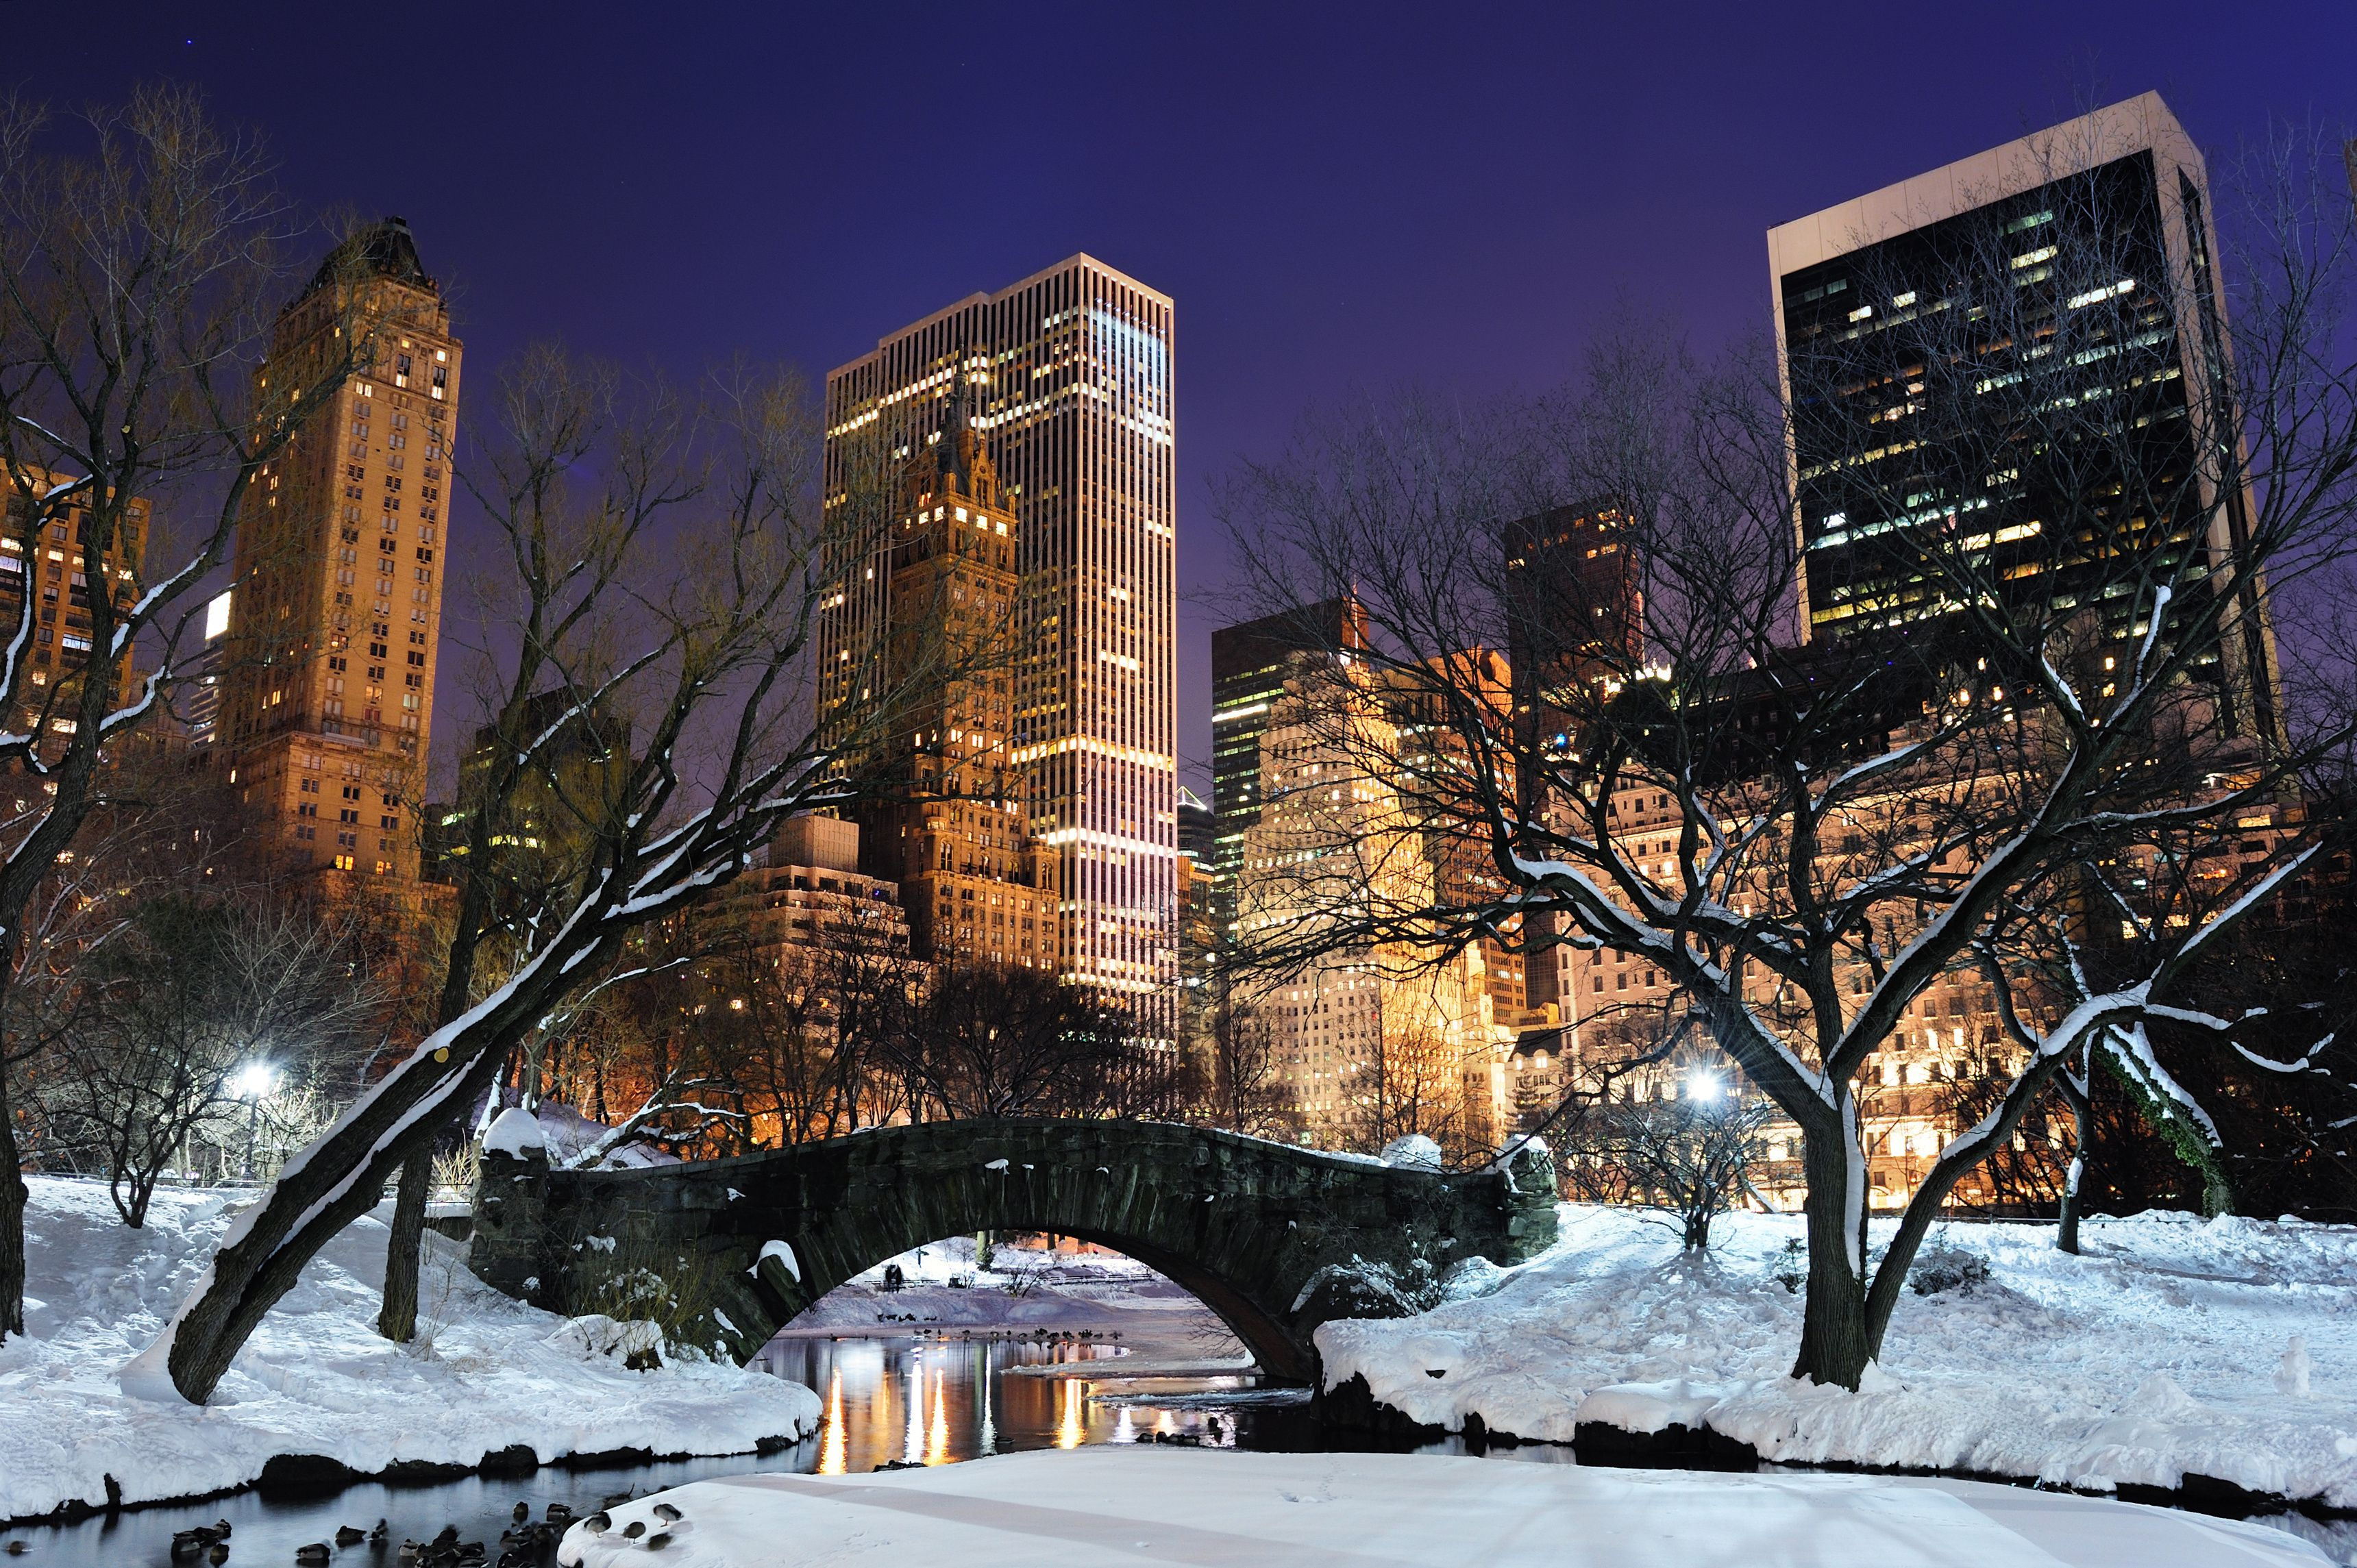 New York Winter Night Desktop Wallpaper Hd 3440x2289px New York City Manhattan Central Park Winter Winter Destinations